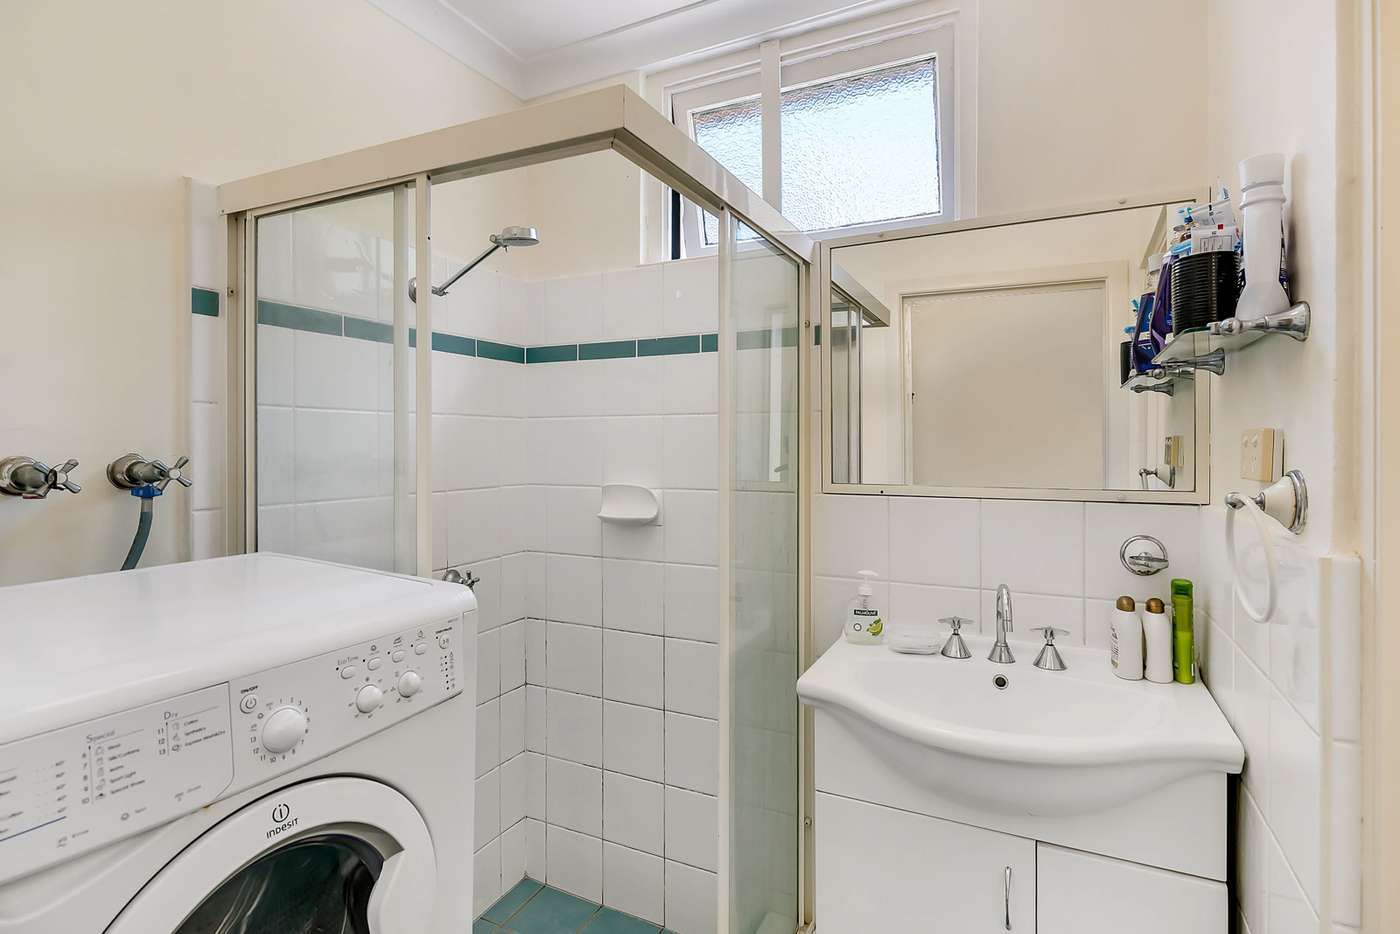 Sixth view of Homely unit listing, 7/75 Sir Fred Schonell Drive, St Lucia QLD 4067